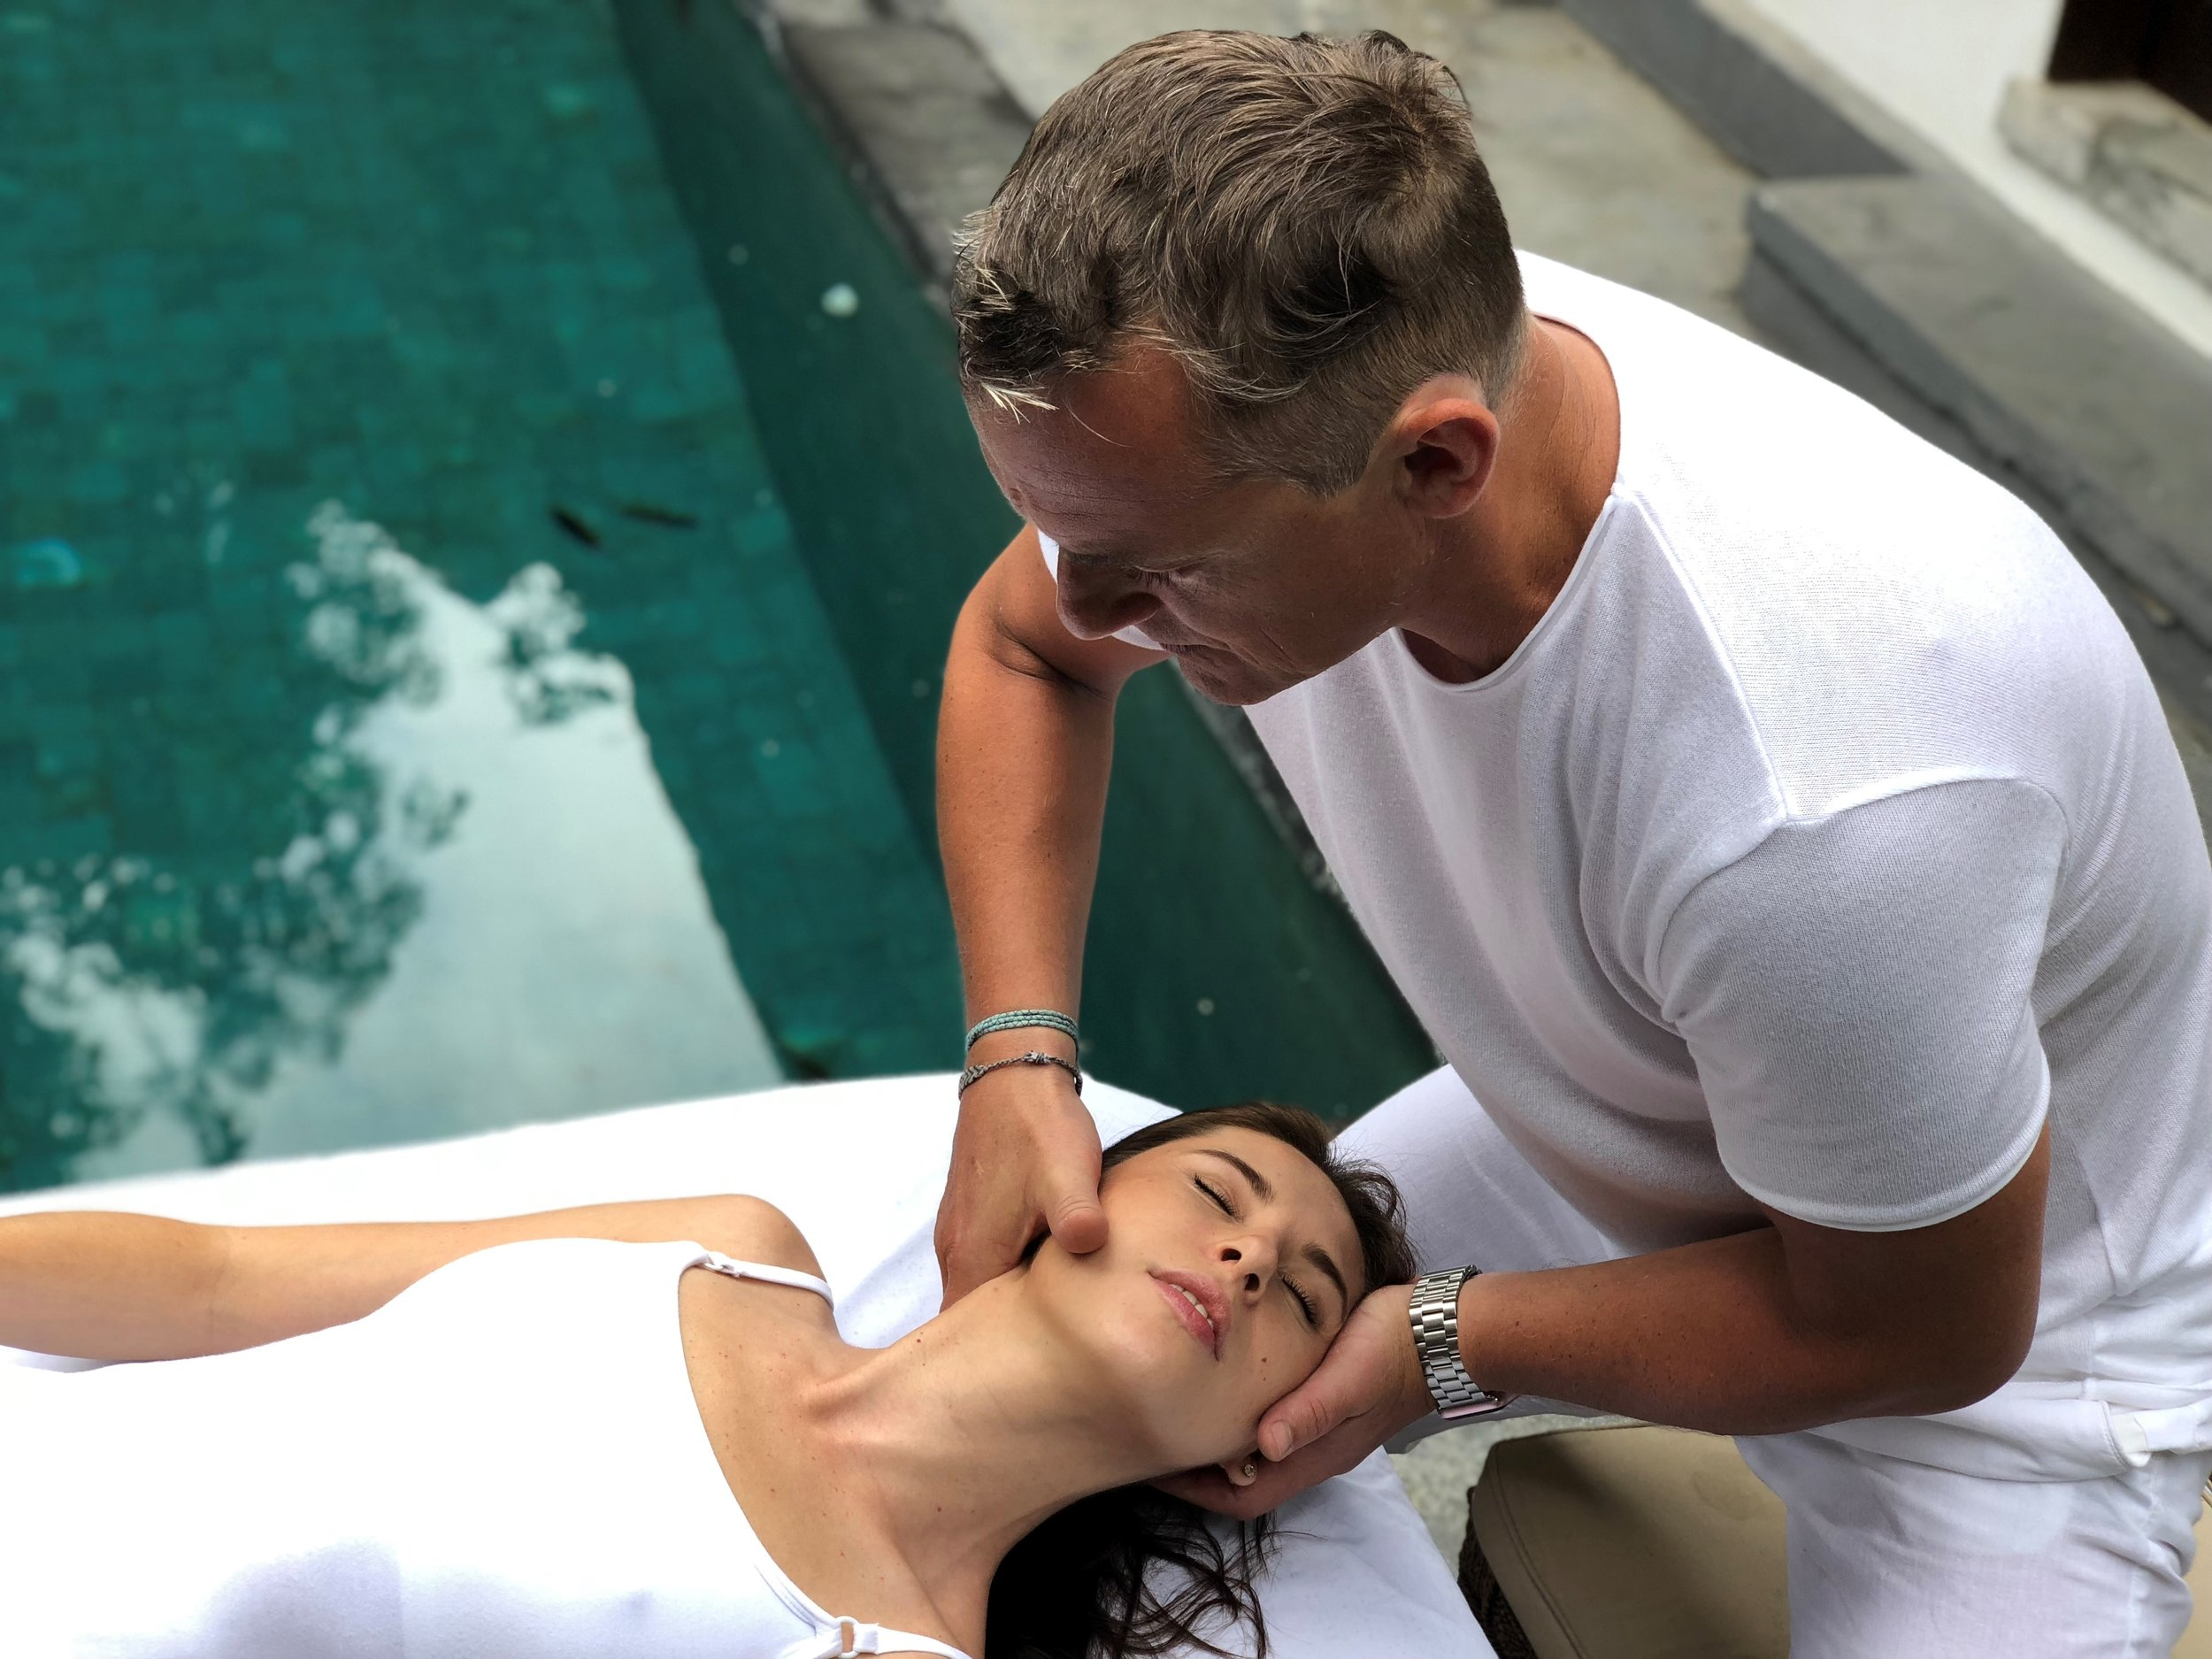 Physiotherapist / Osteopath - The medical professional Mathieu is certified physiotherapist, osteopath & massage therapist. He offers pain management, body balancing and taylor made massages.Exclusive at our studio from 9-15. September 2019.Your time is precious! Book your spot as soon as possible at the front desk.www.myfrenchphysio.com